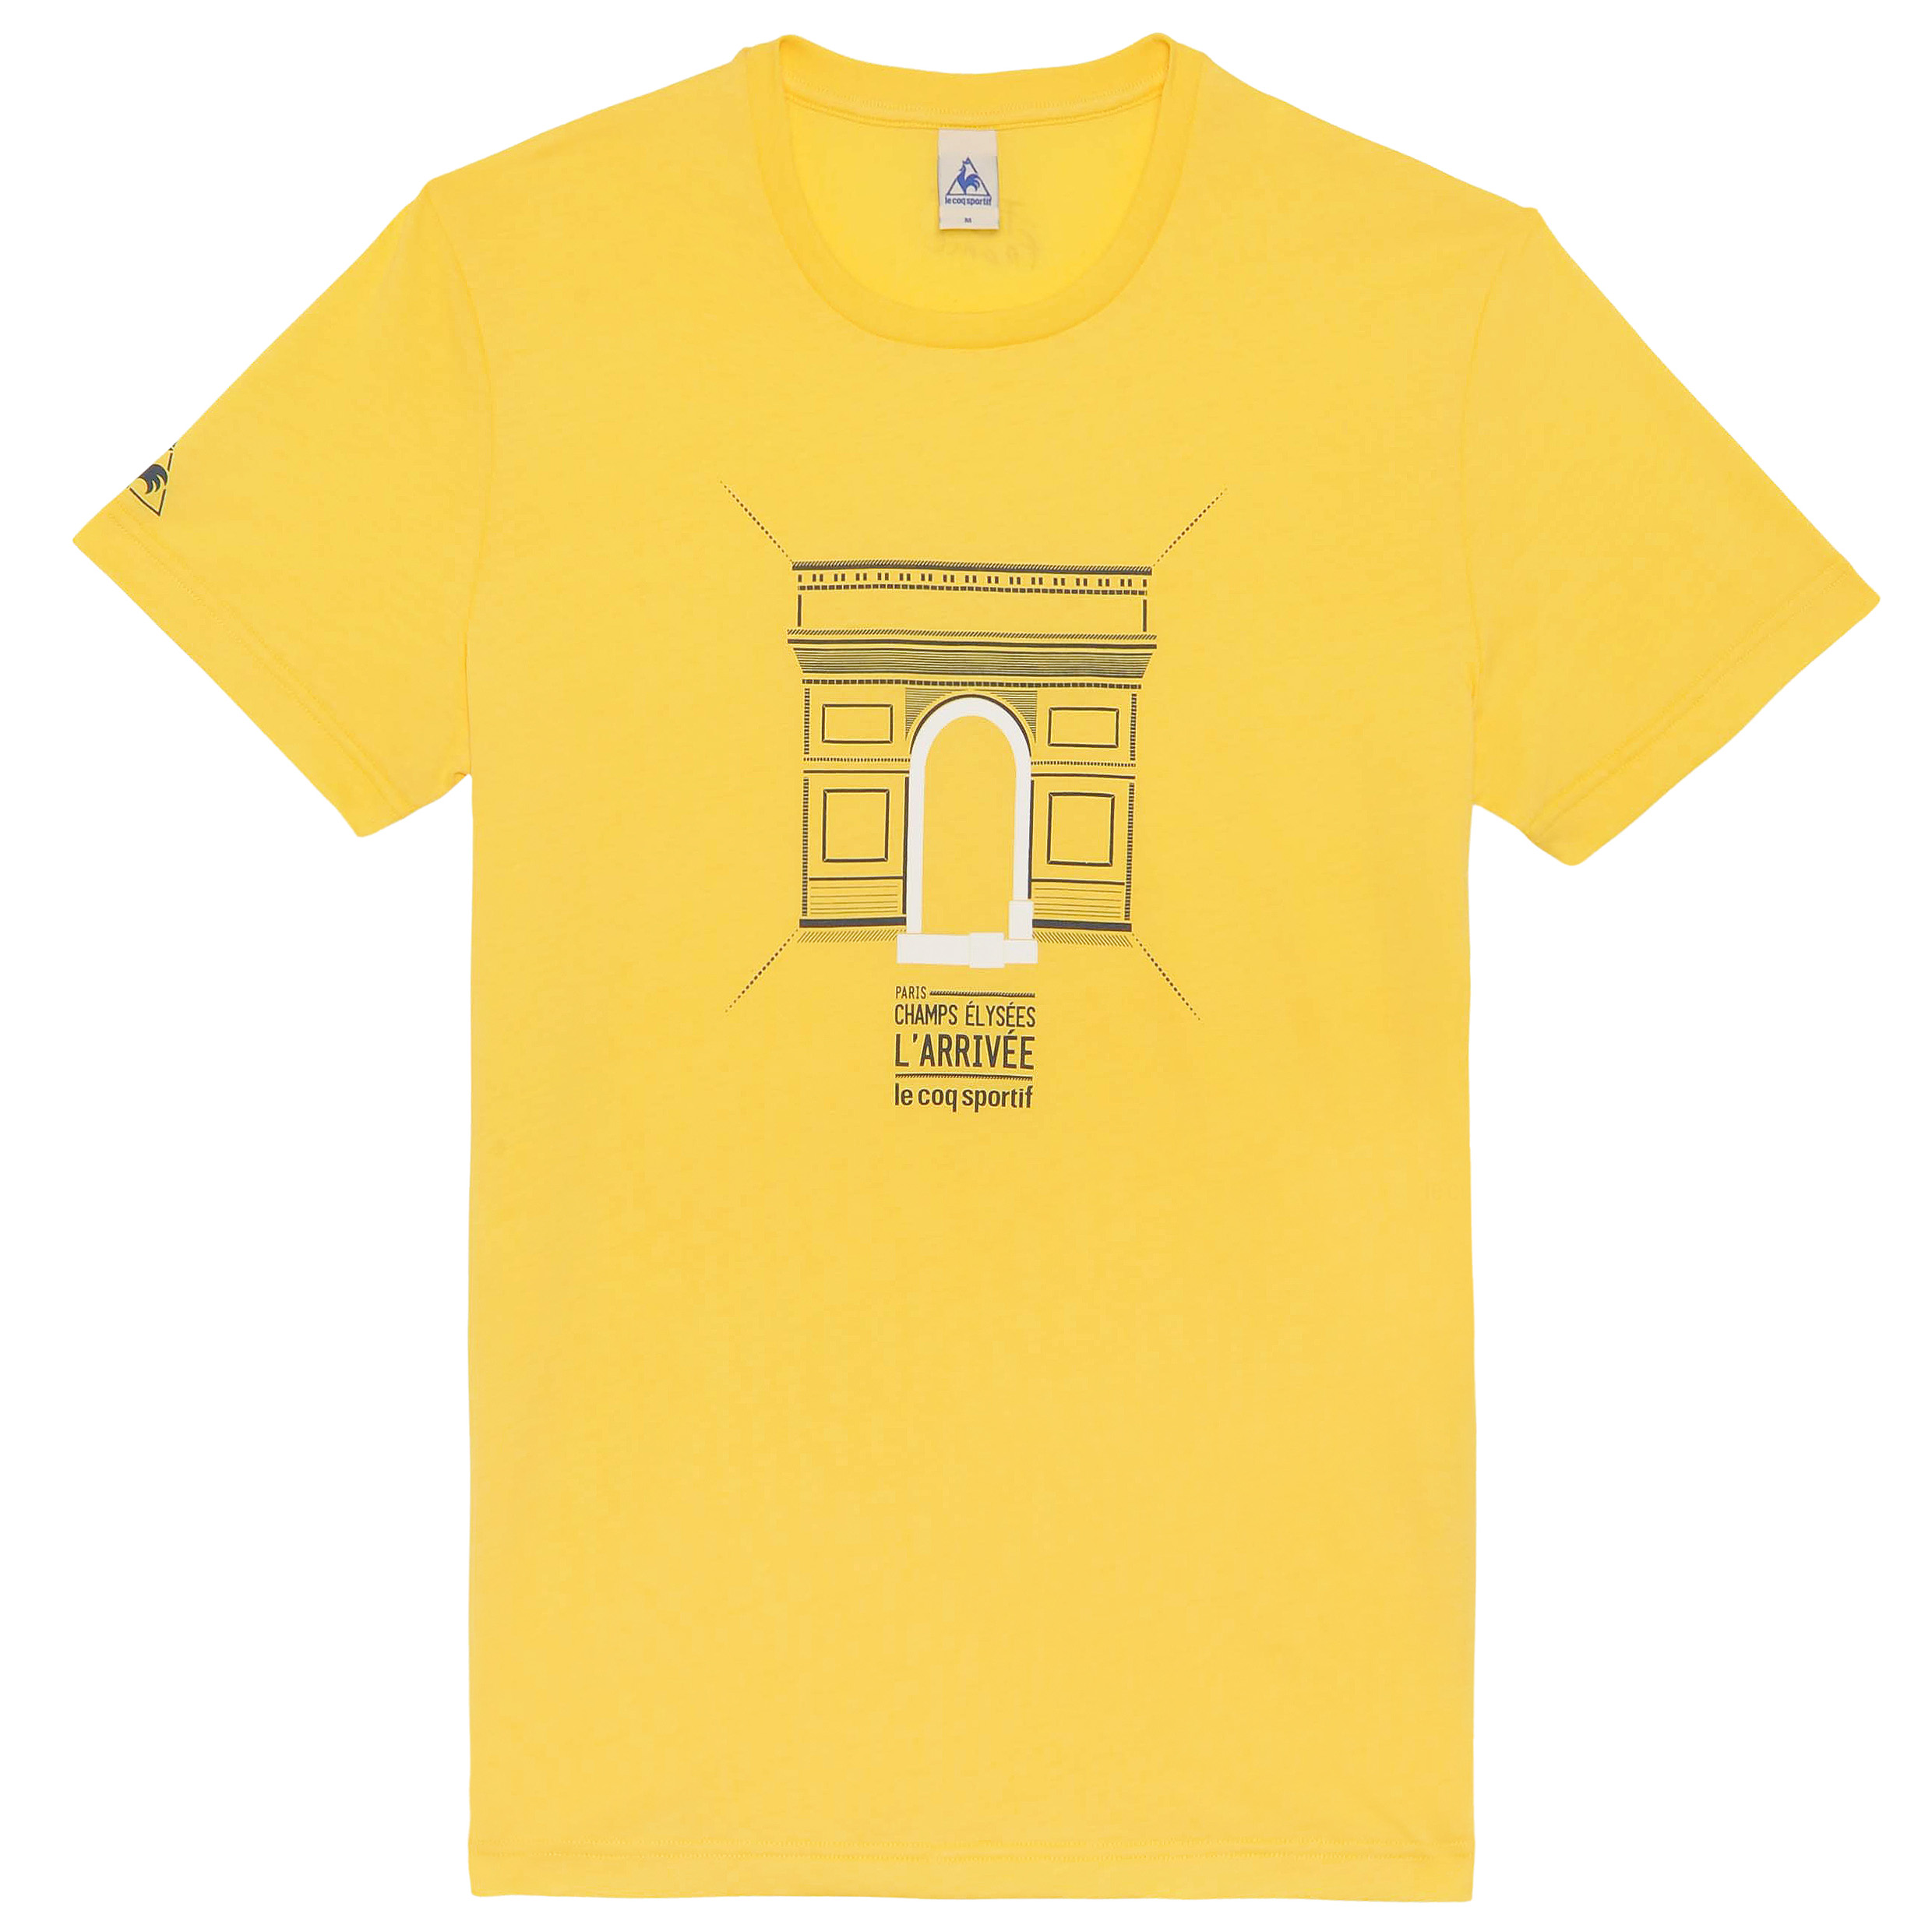 Le Tour de France Le Coq Sportif No 15 T-Shirt - Primrose Yellow